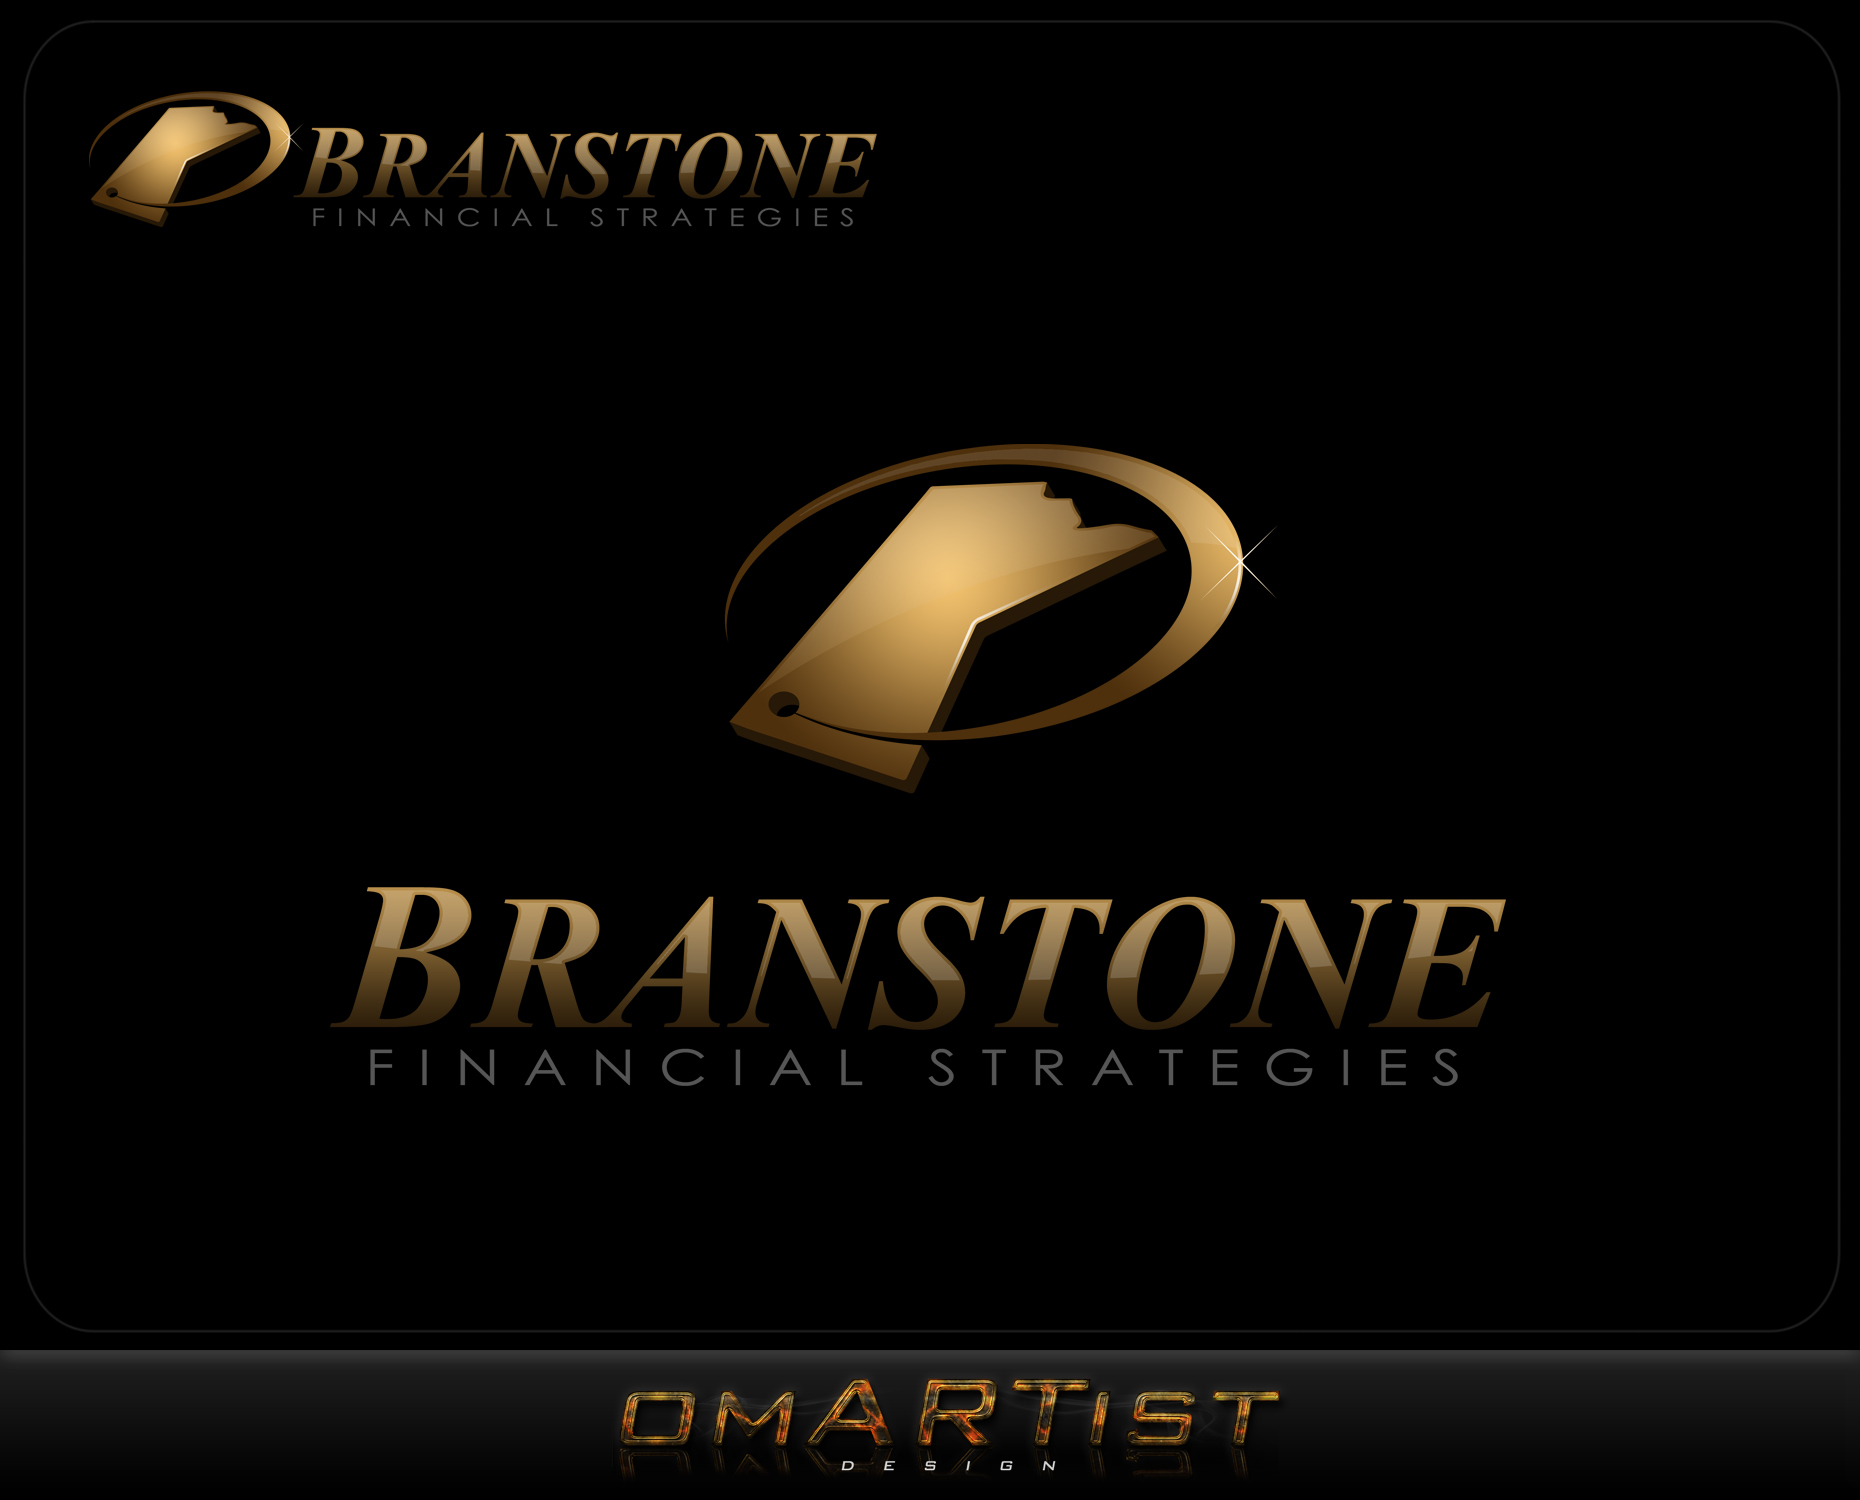 Logo Design by omARTist - Entry No. 113 in the Logo Design Contest Inspiring Logo Design for Branstone Financial Strategies.